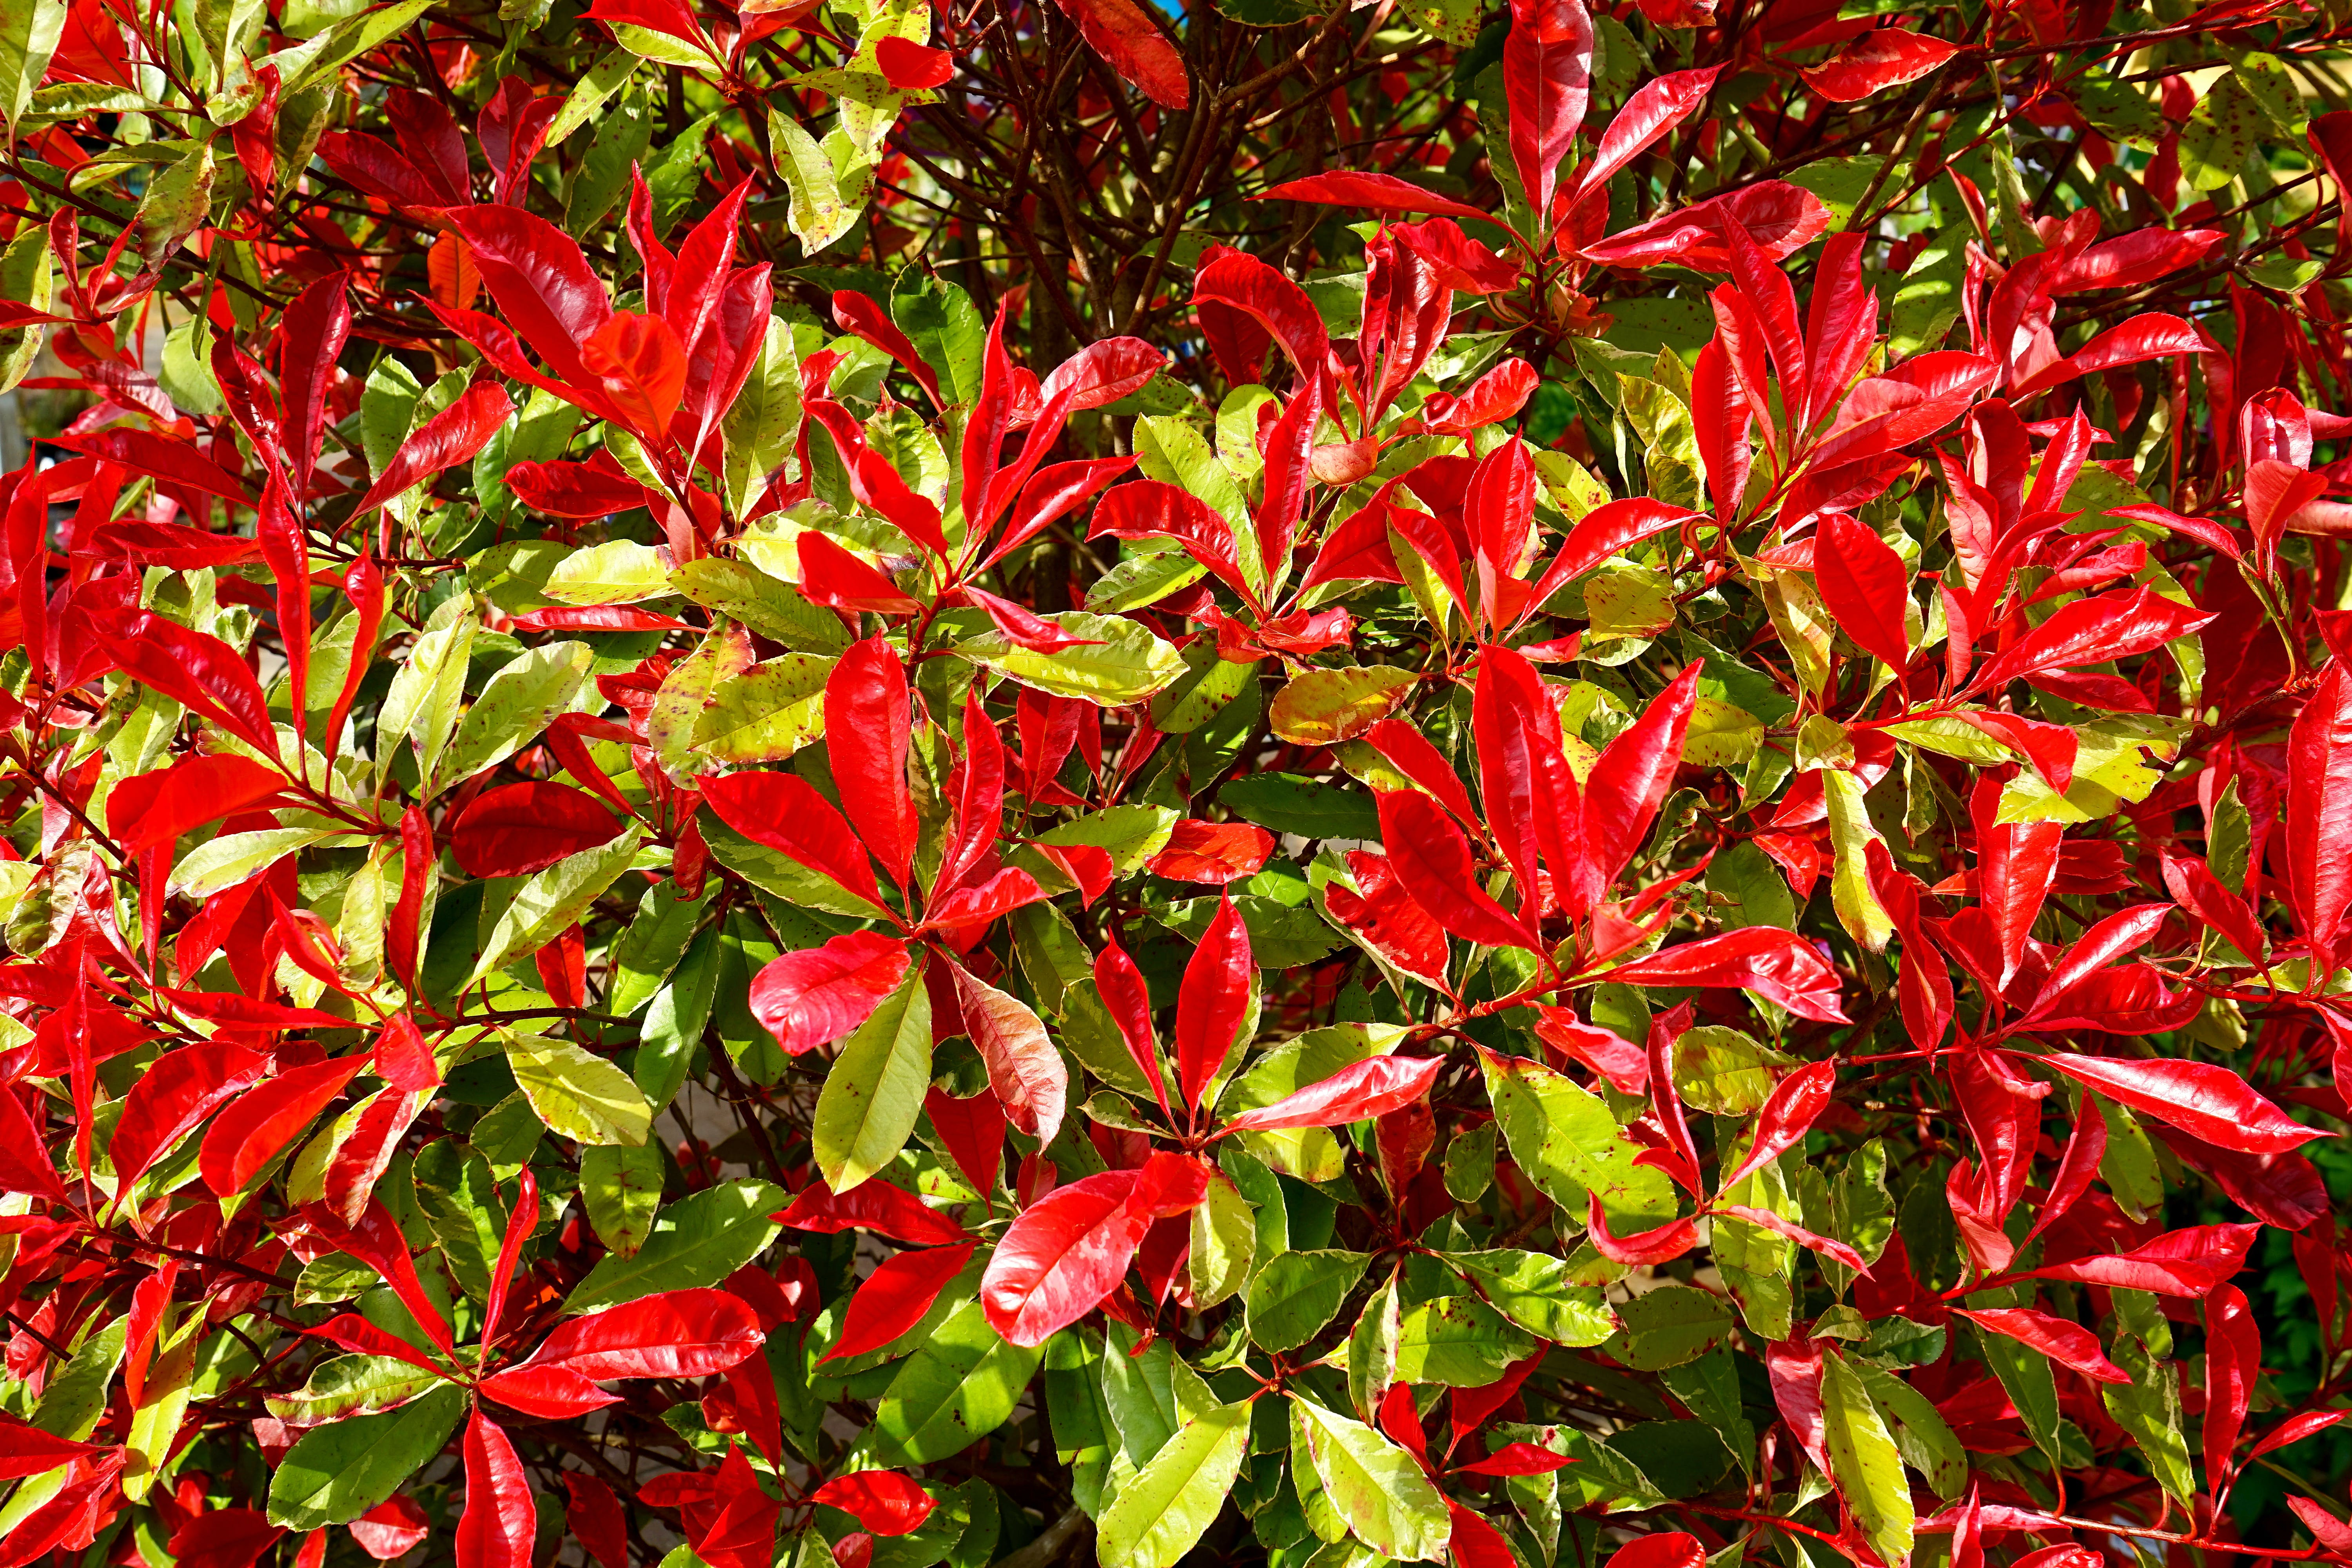 Photography of Red and Green Leaves